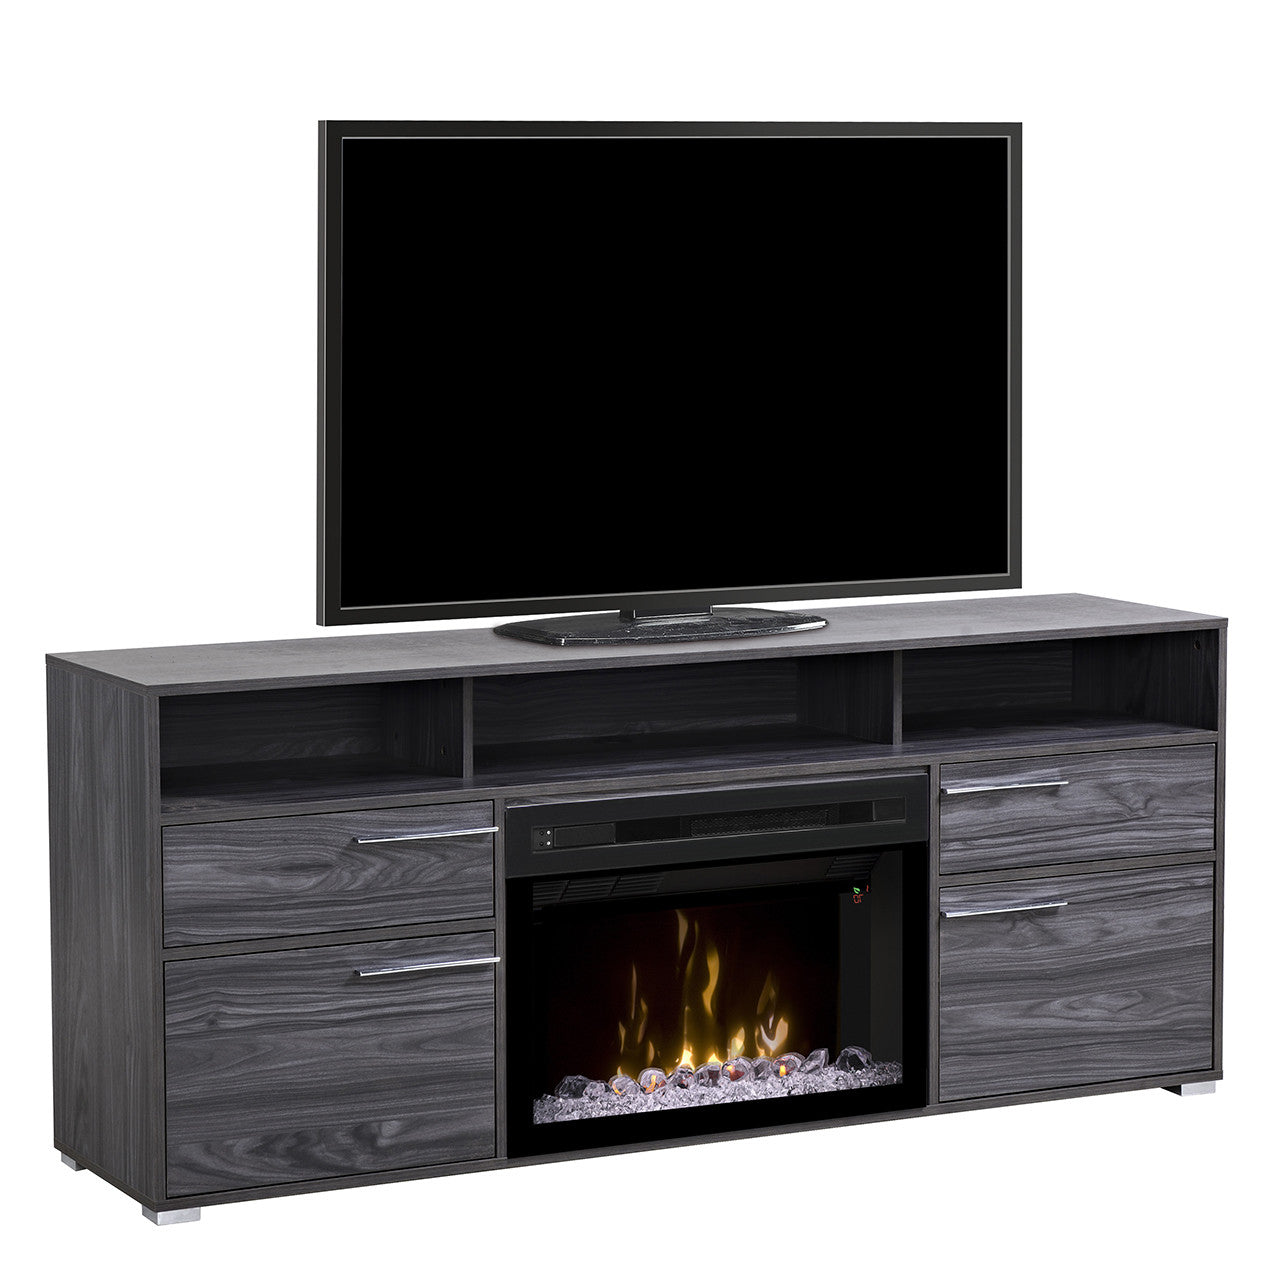 Picture of Sander Media Console Fireplace